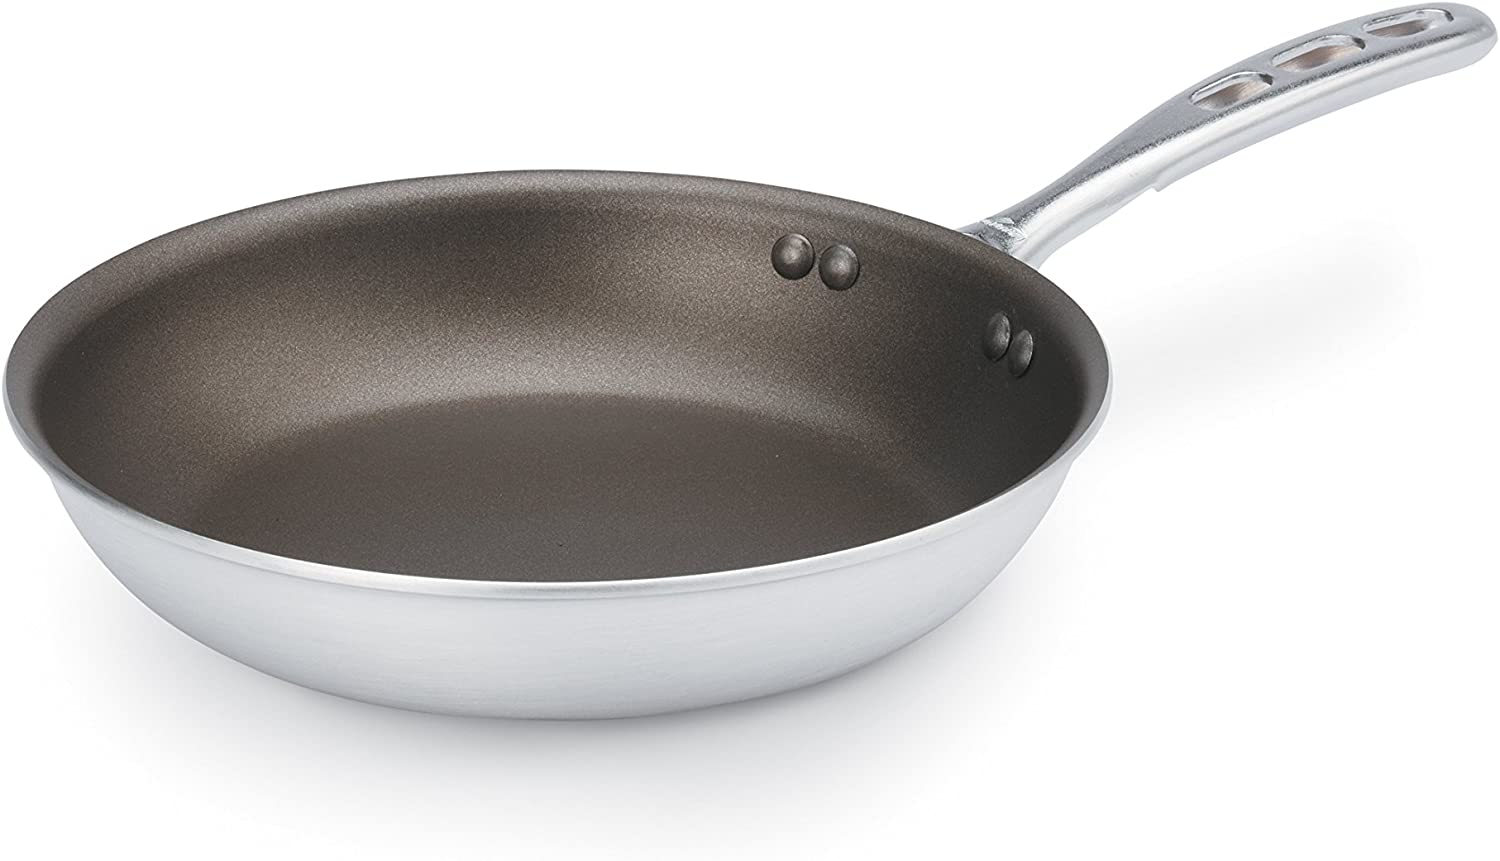 barato Vollrath 67008 Wear-Ever Non-Stick 8 Aluminum Fry Pan Pan Pan by Vollrath  forma única